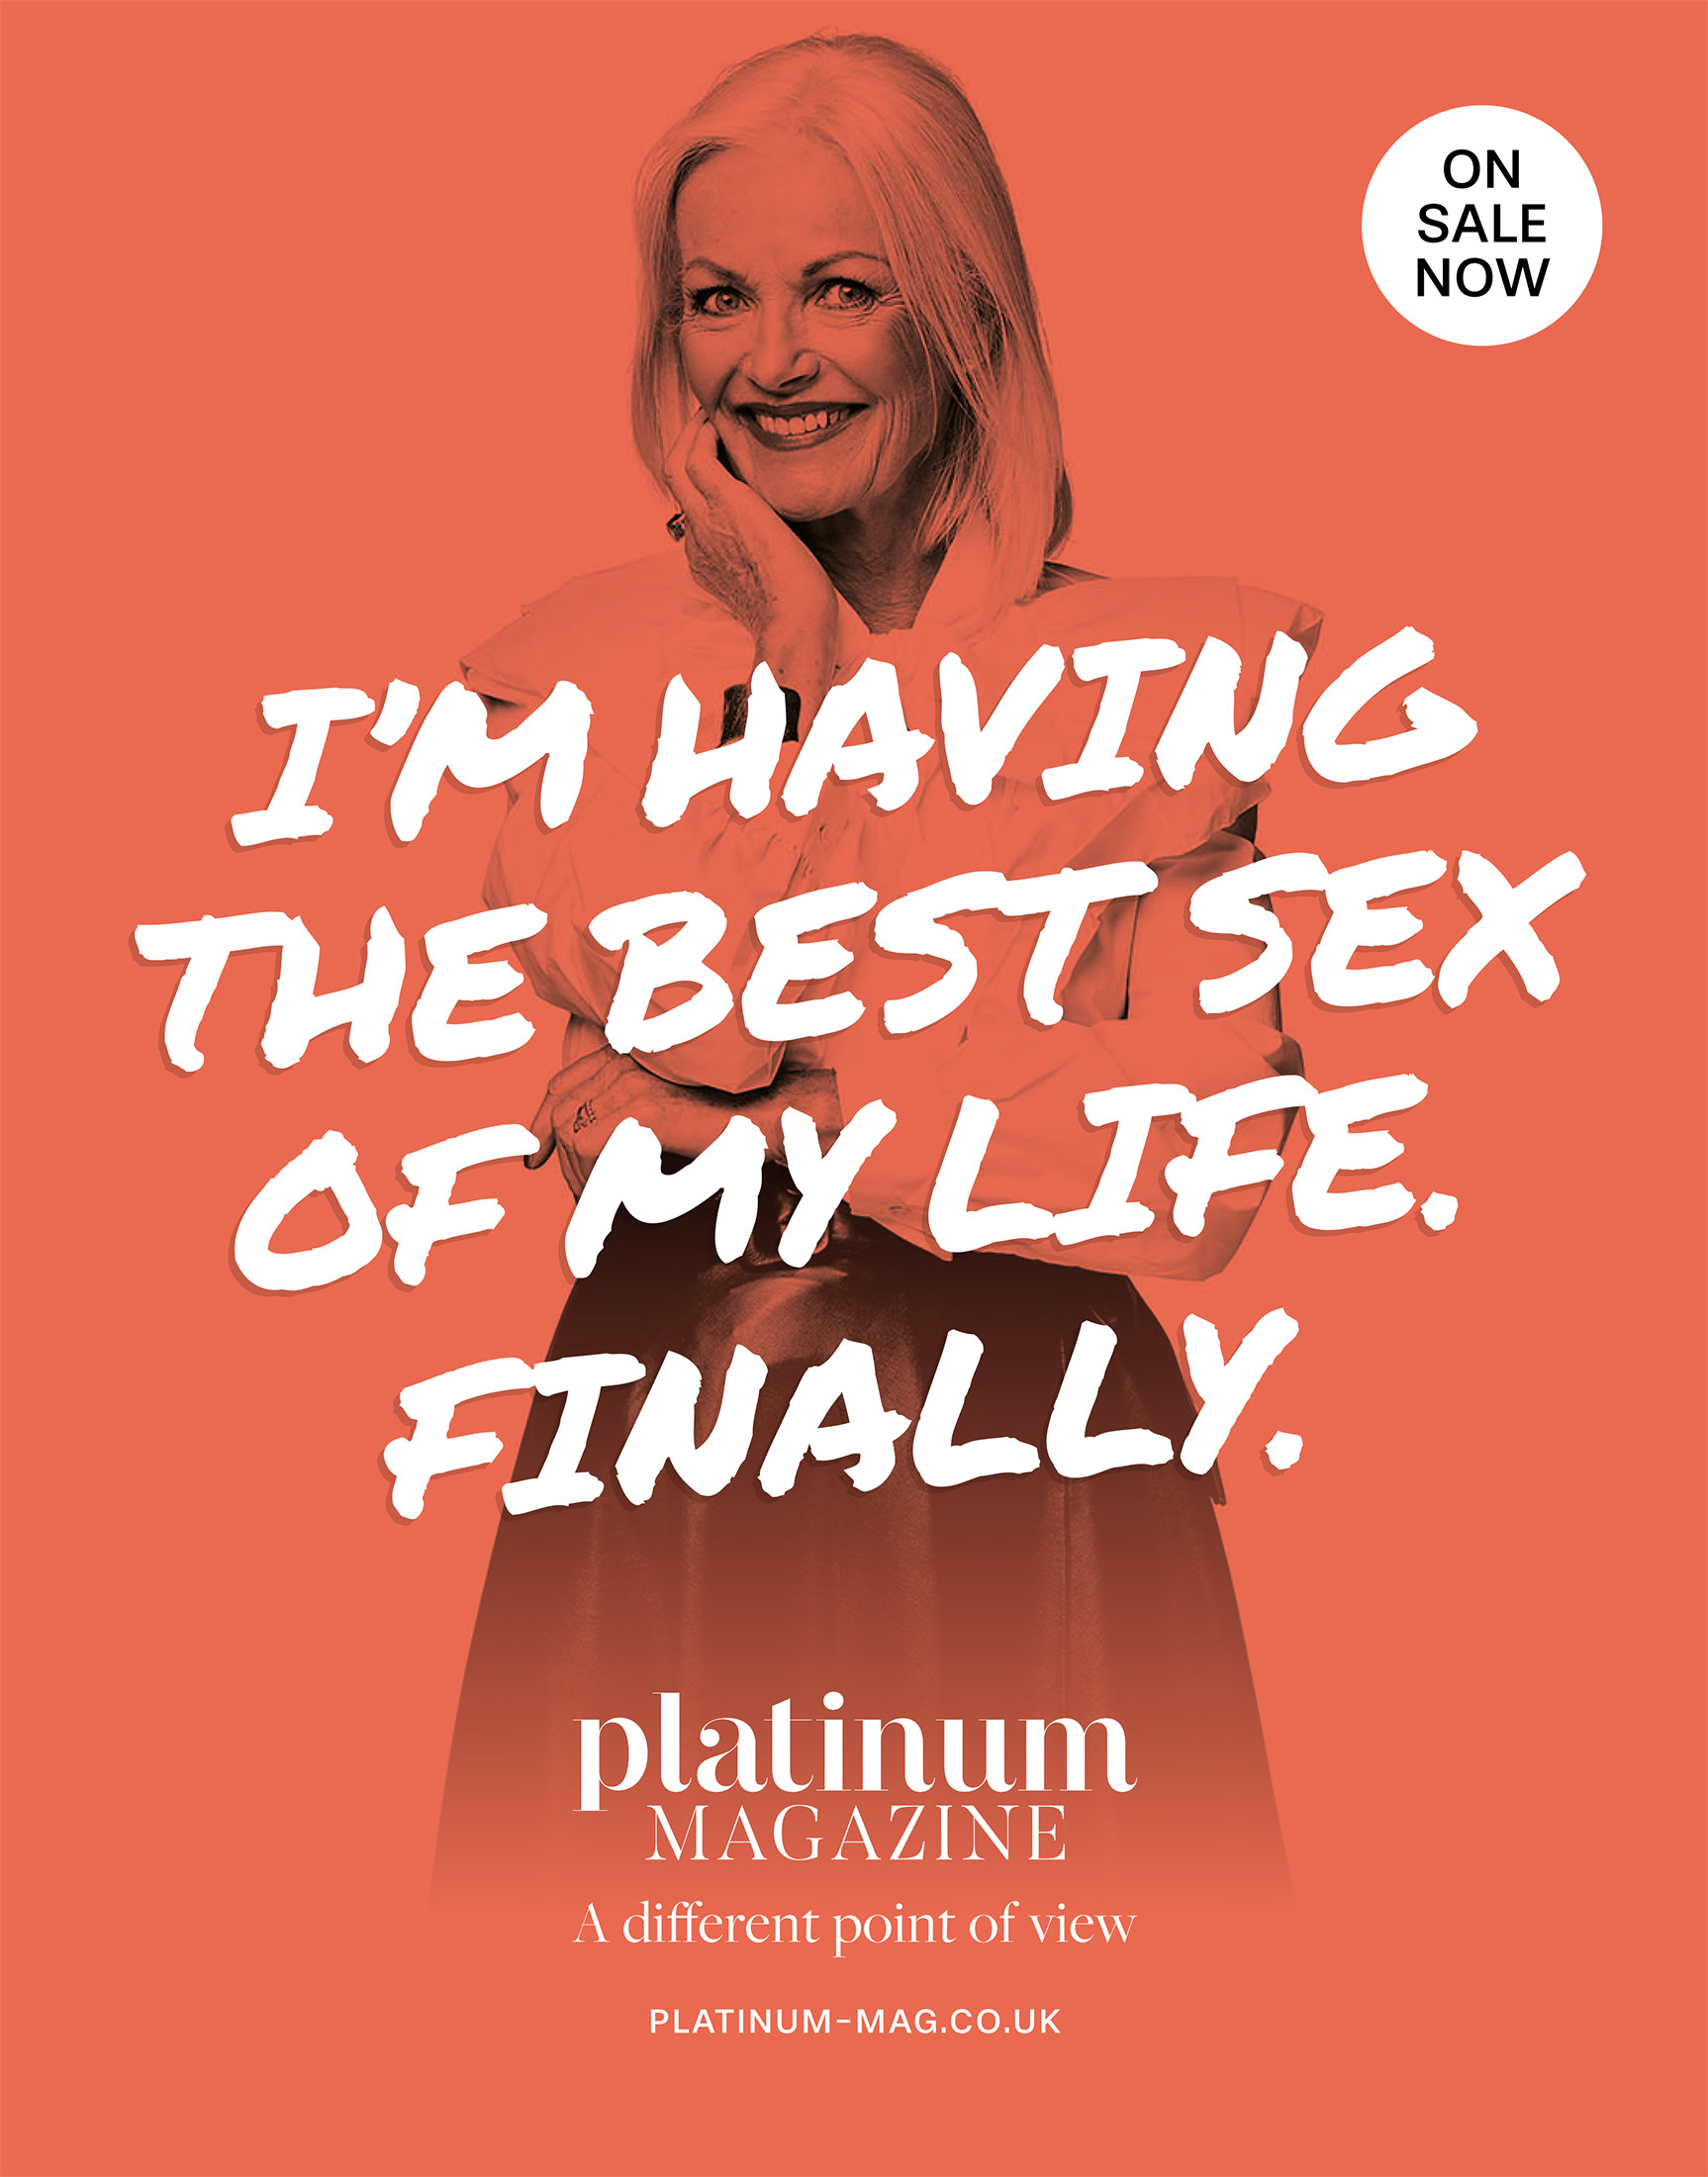 Platinum Launch advert – I'm having the best sex of my life. Finally.